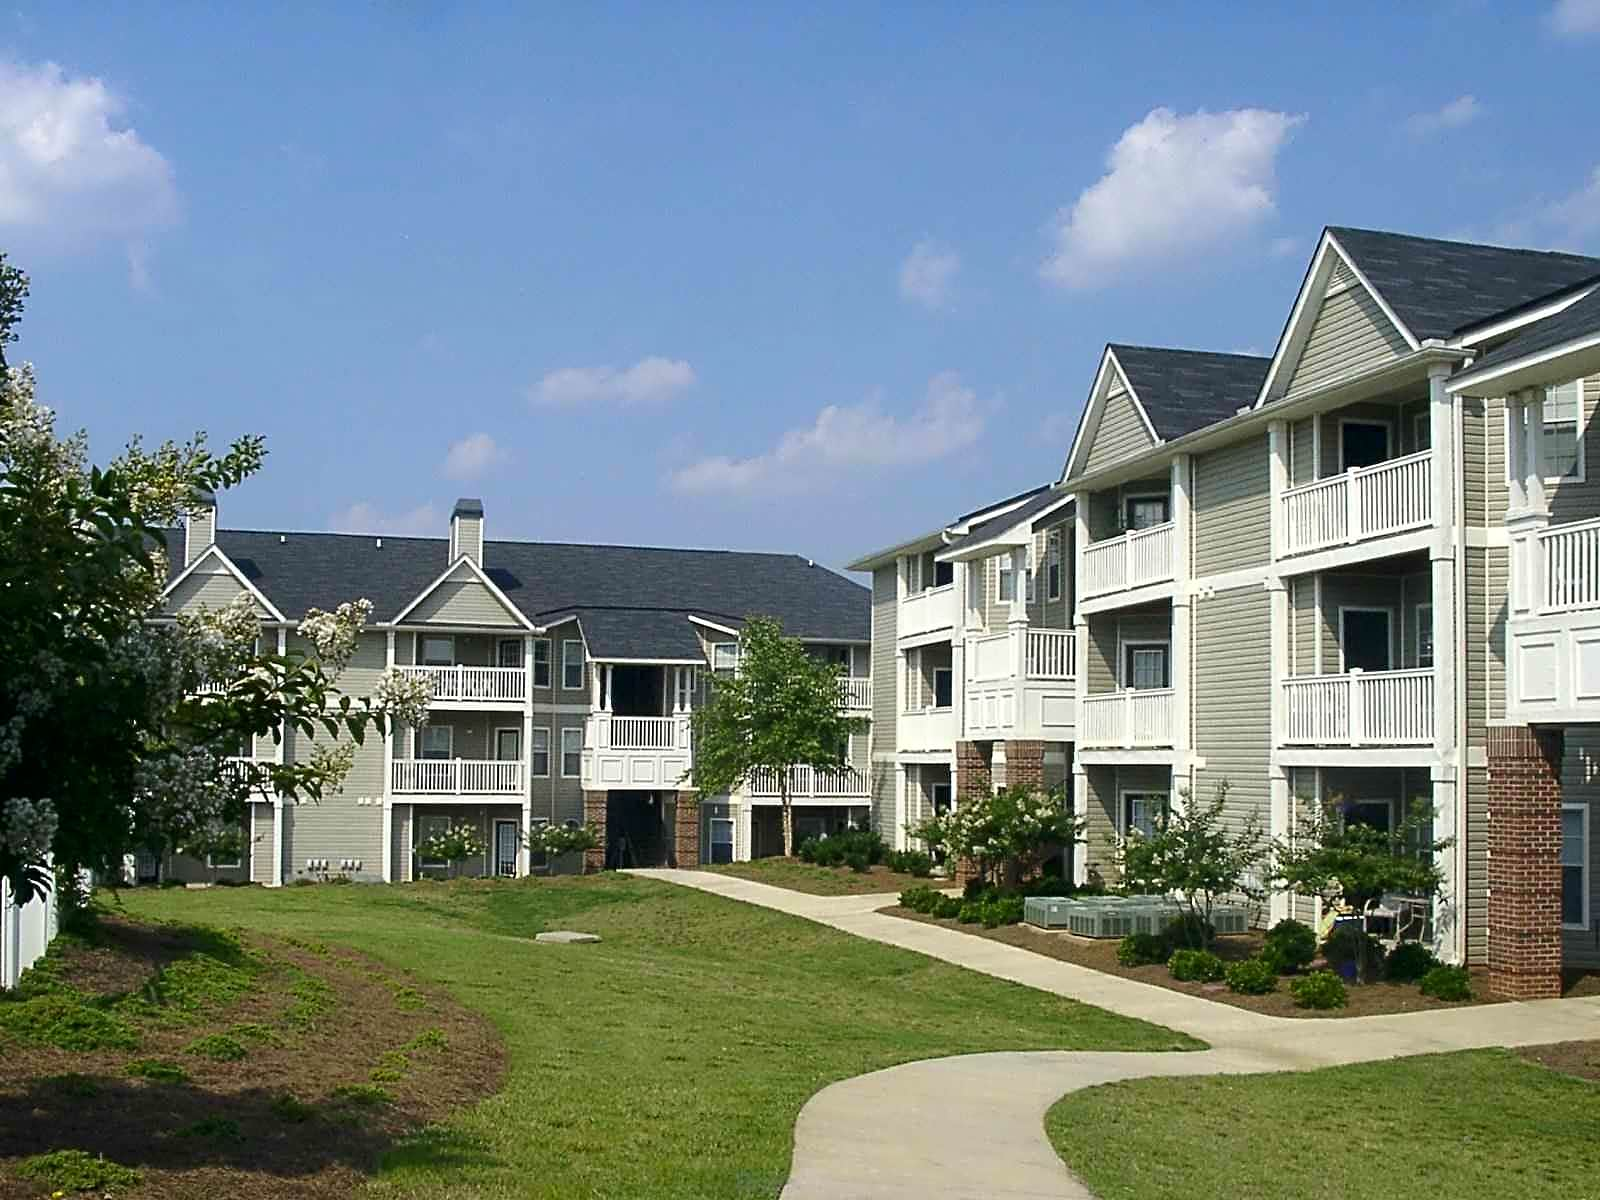 West chase apartment homes greer sc 29650 for Home builders greer sc